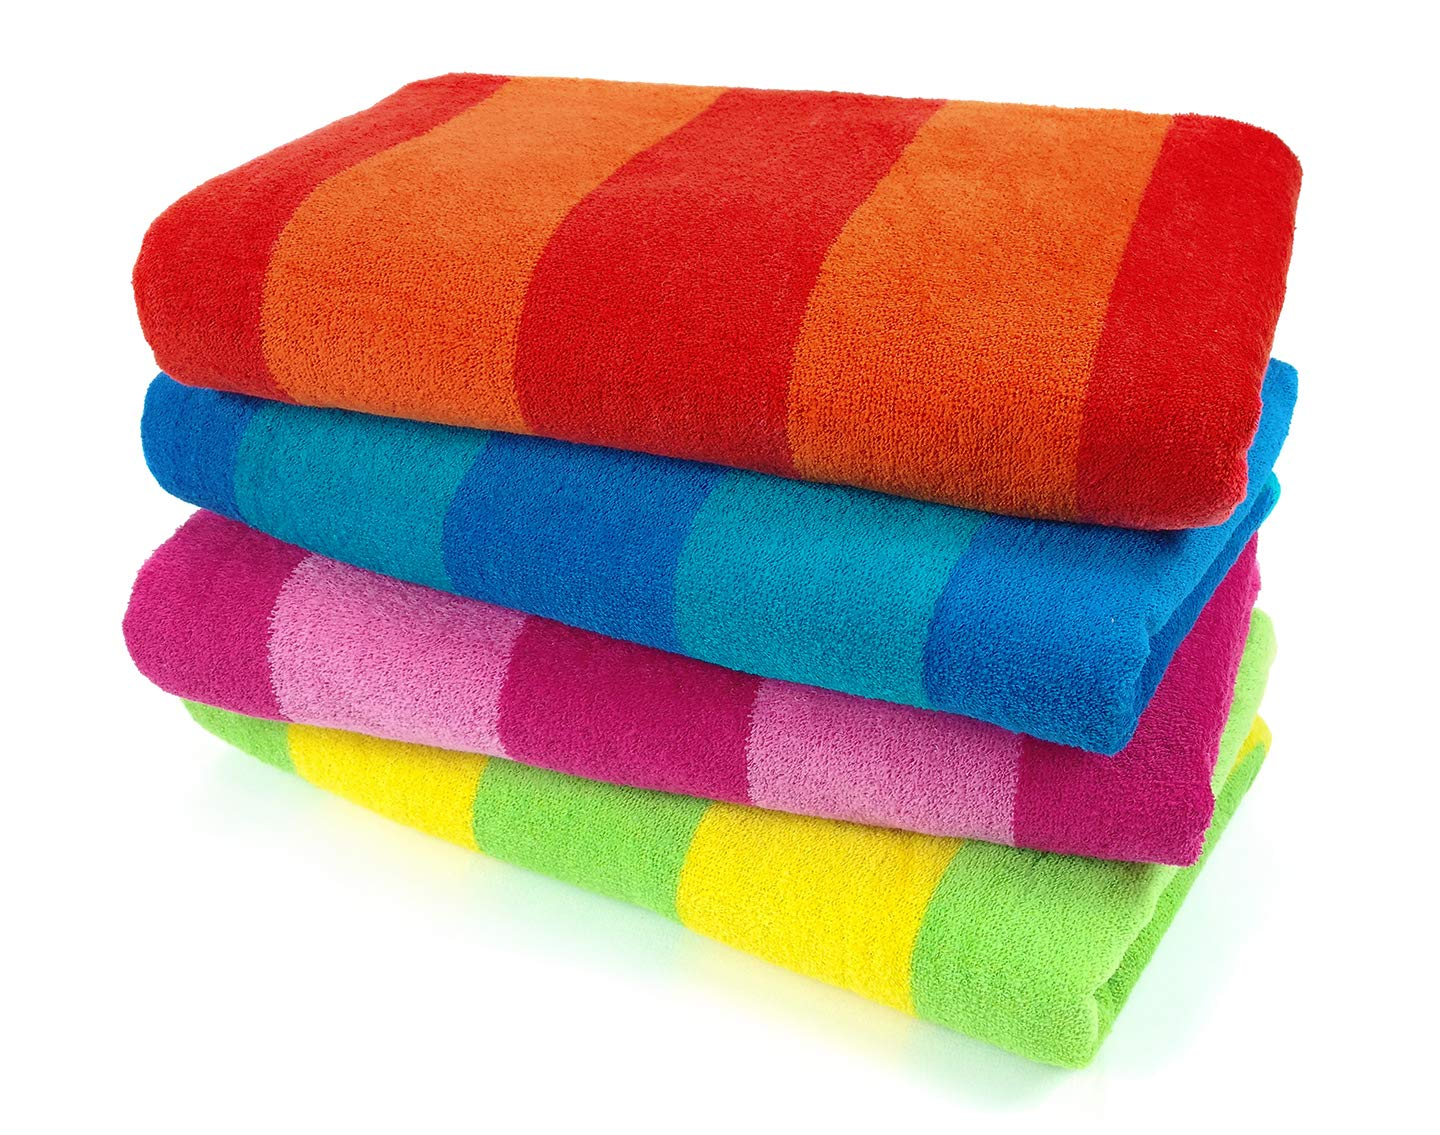 Cotton Velour Striped Beach & Pool Towel 4-Pack  Best Beach Towels